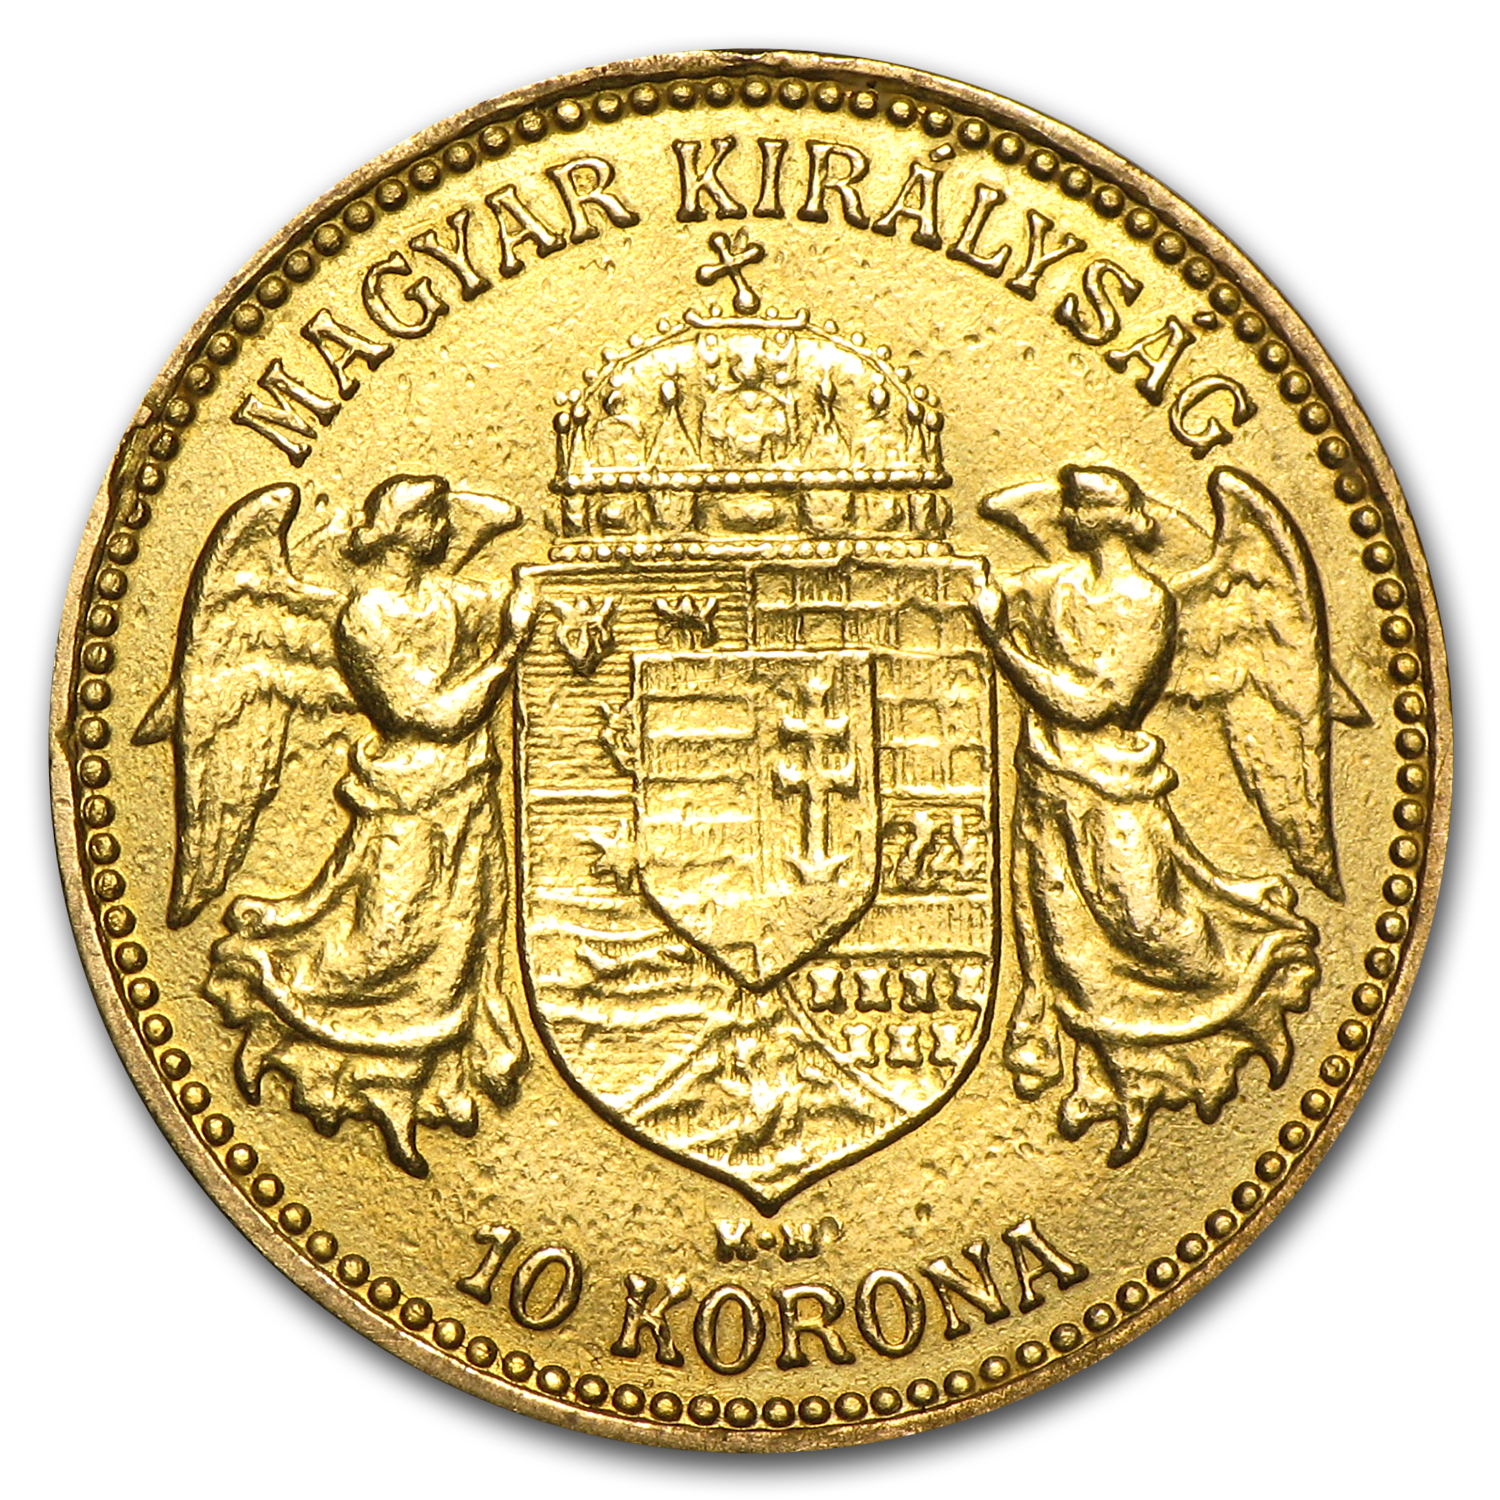 Hungary Gold 10 Korona (Ex-Jewelry) AGW .0980